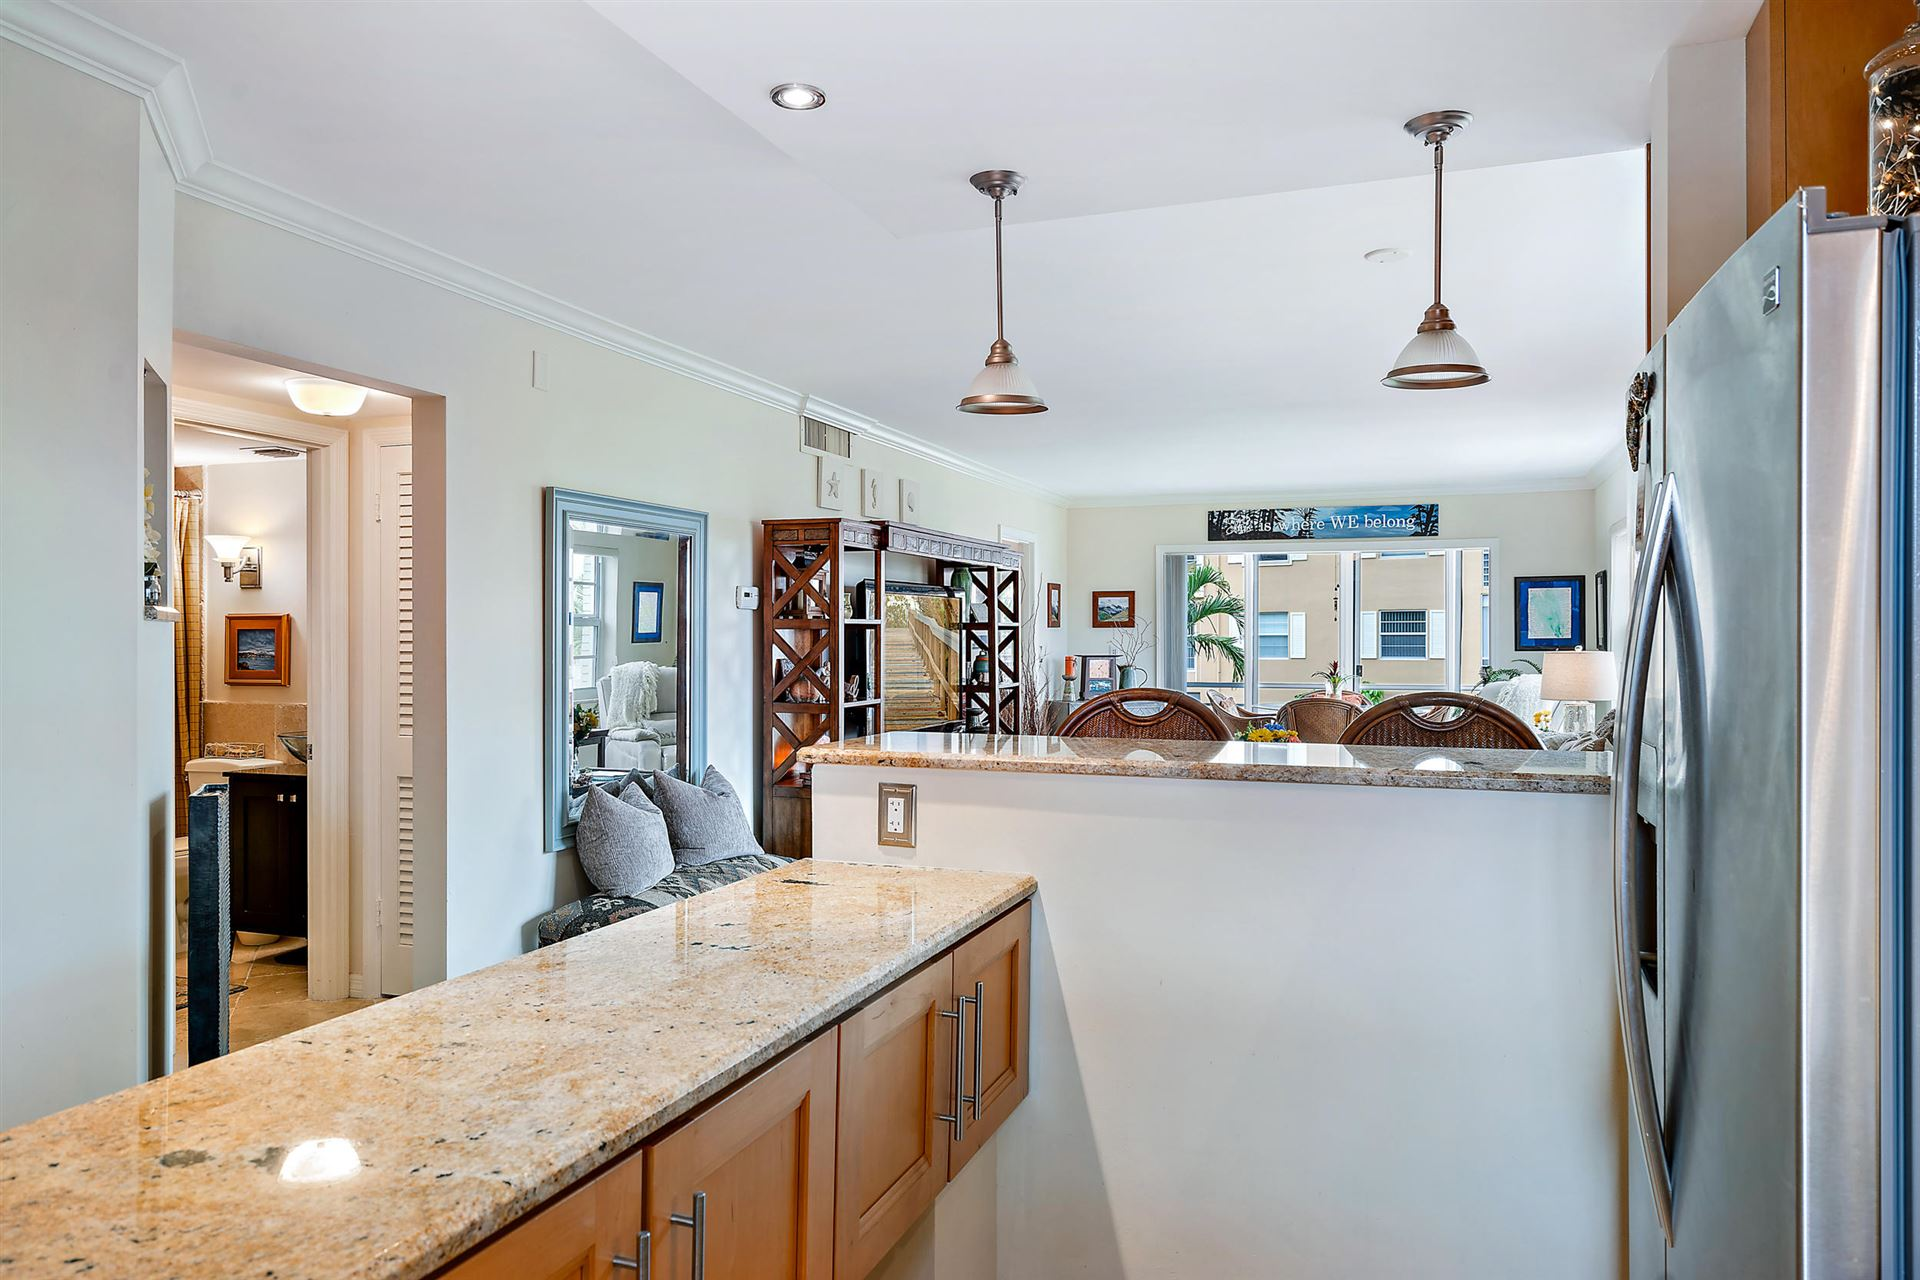 Photo of 304 Golfview 208 Road #208, North Palm Beach, FL 33408 (MLS # RX-10694683)